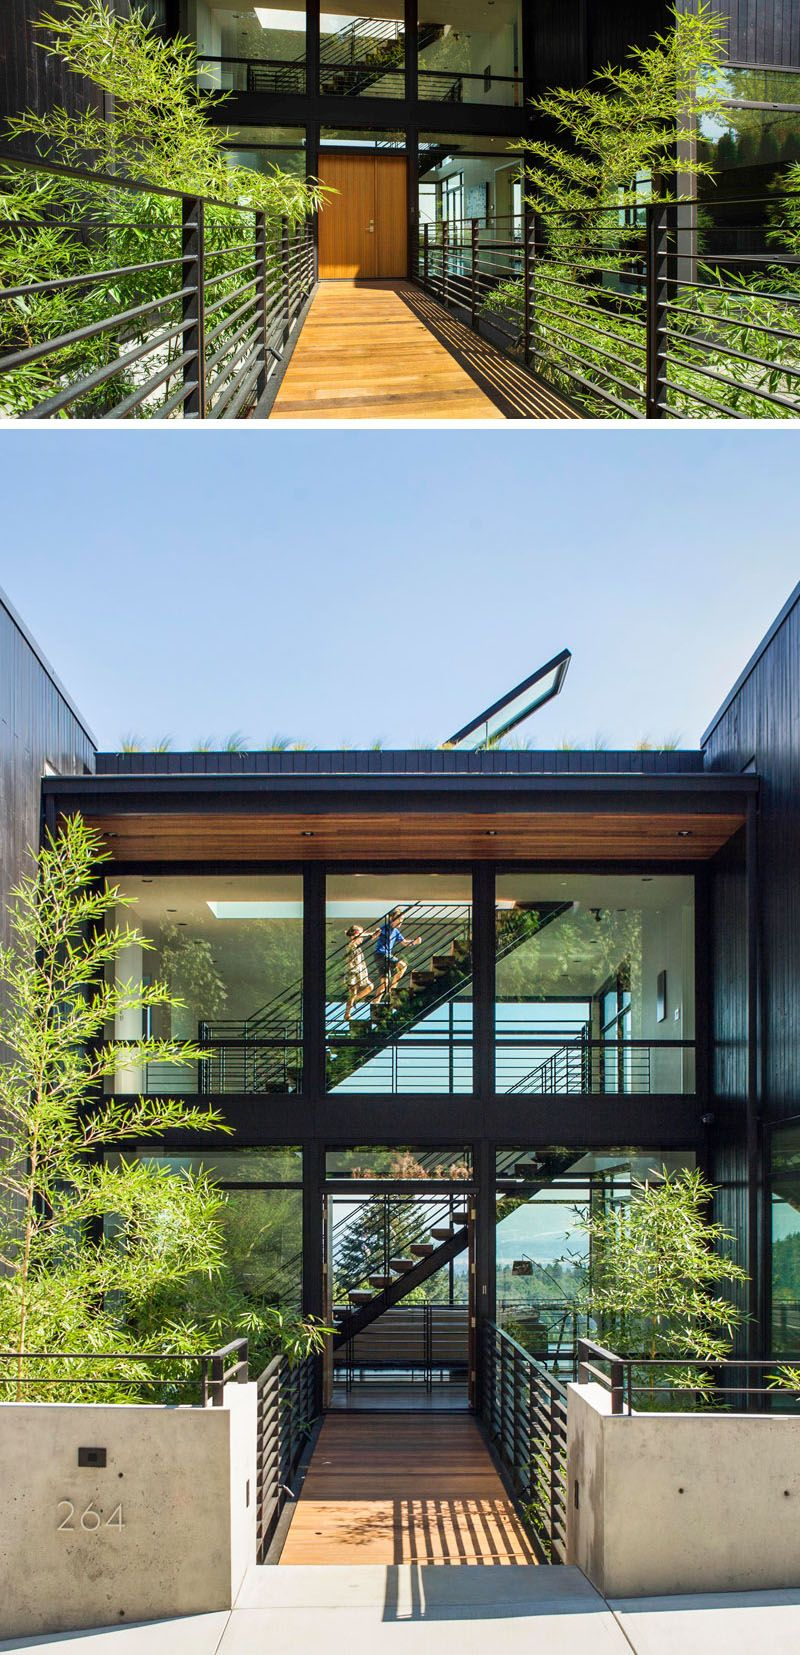 Best Kitchen Gallery: To Enter This Home You Must Pass Over A Bridge With A Bamboo of Modern Home Base Of Steep Hillside on rachelxblog.com